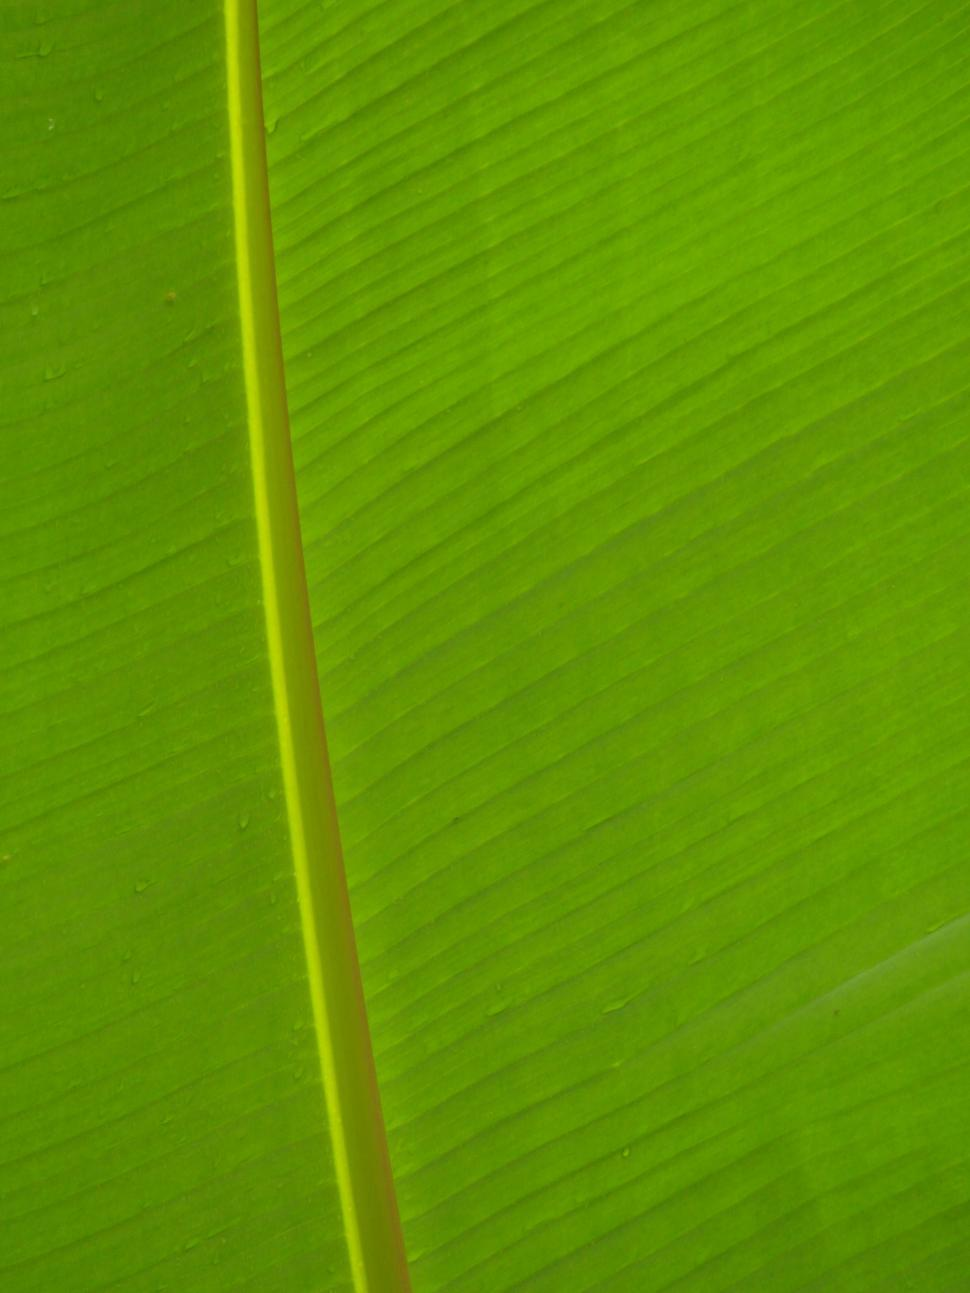 Download Free Stock Photo of Banana Leaf Background